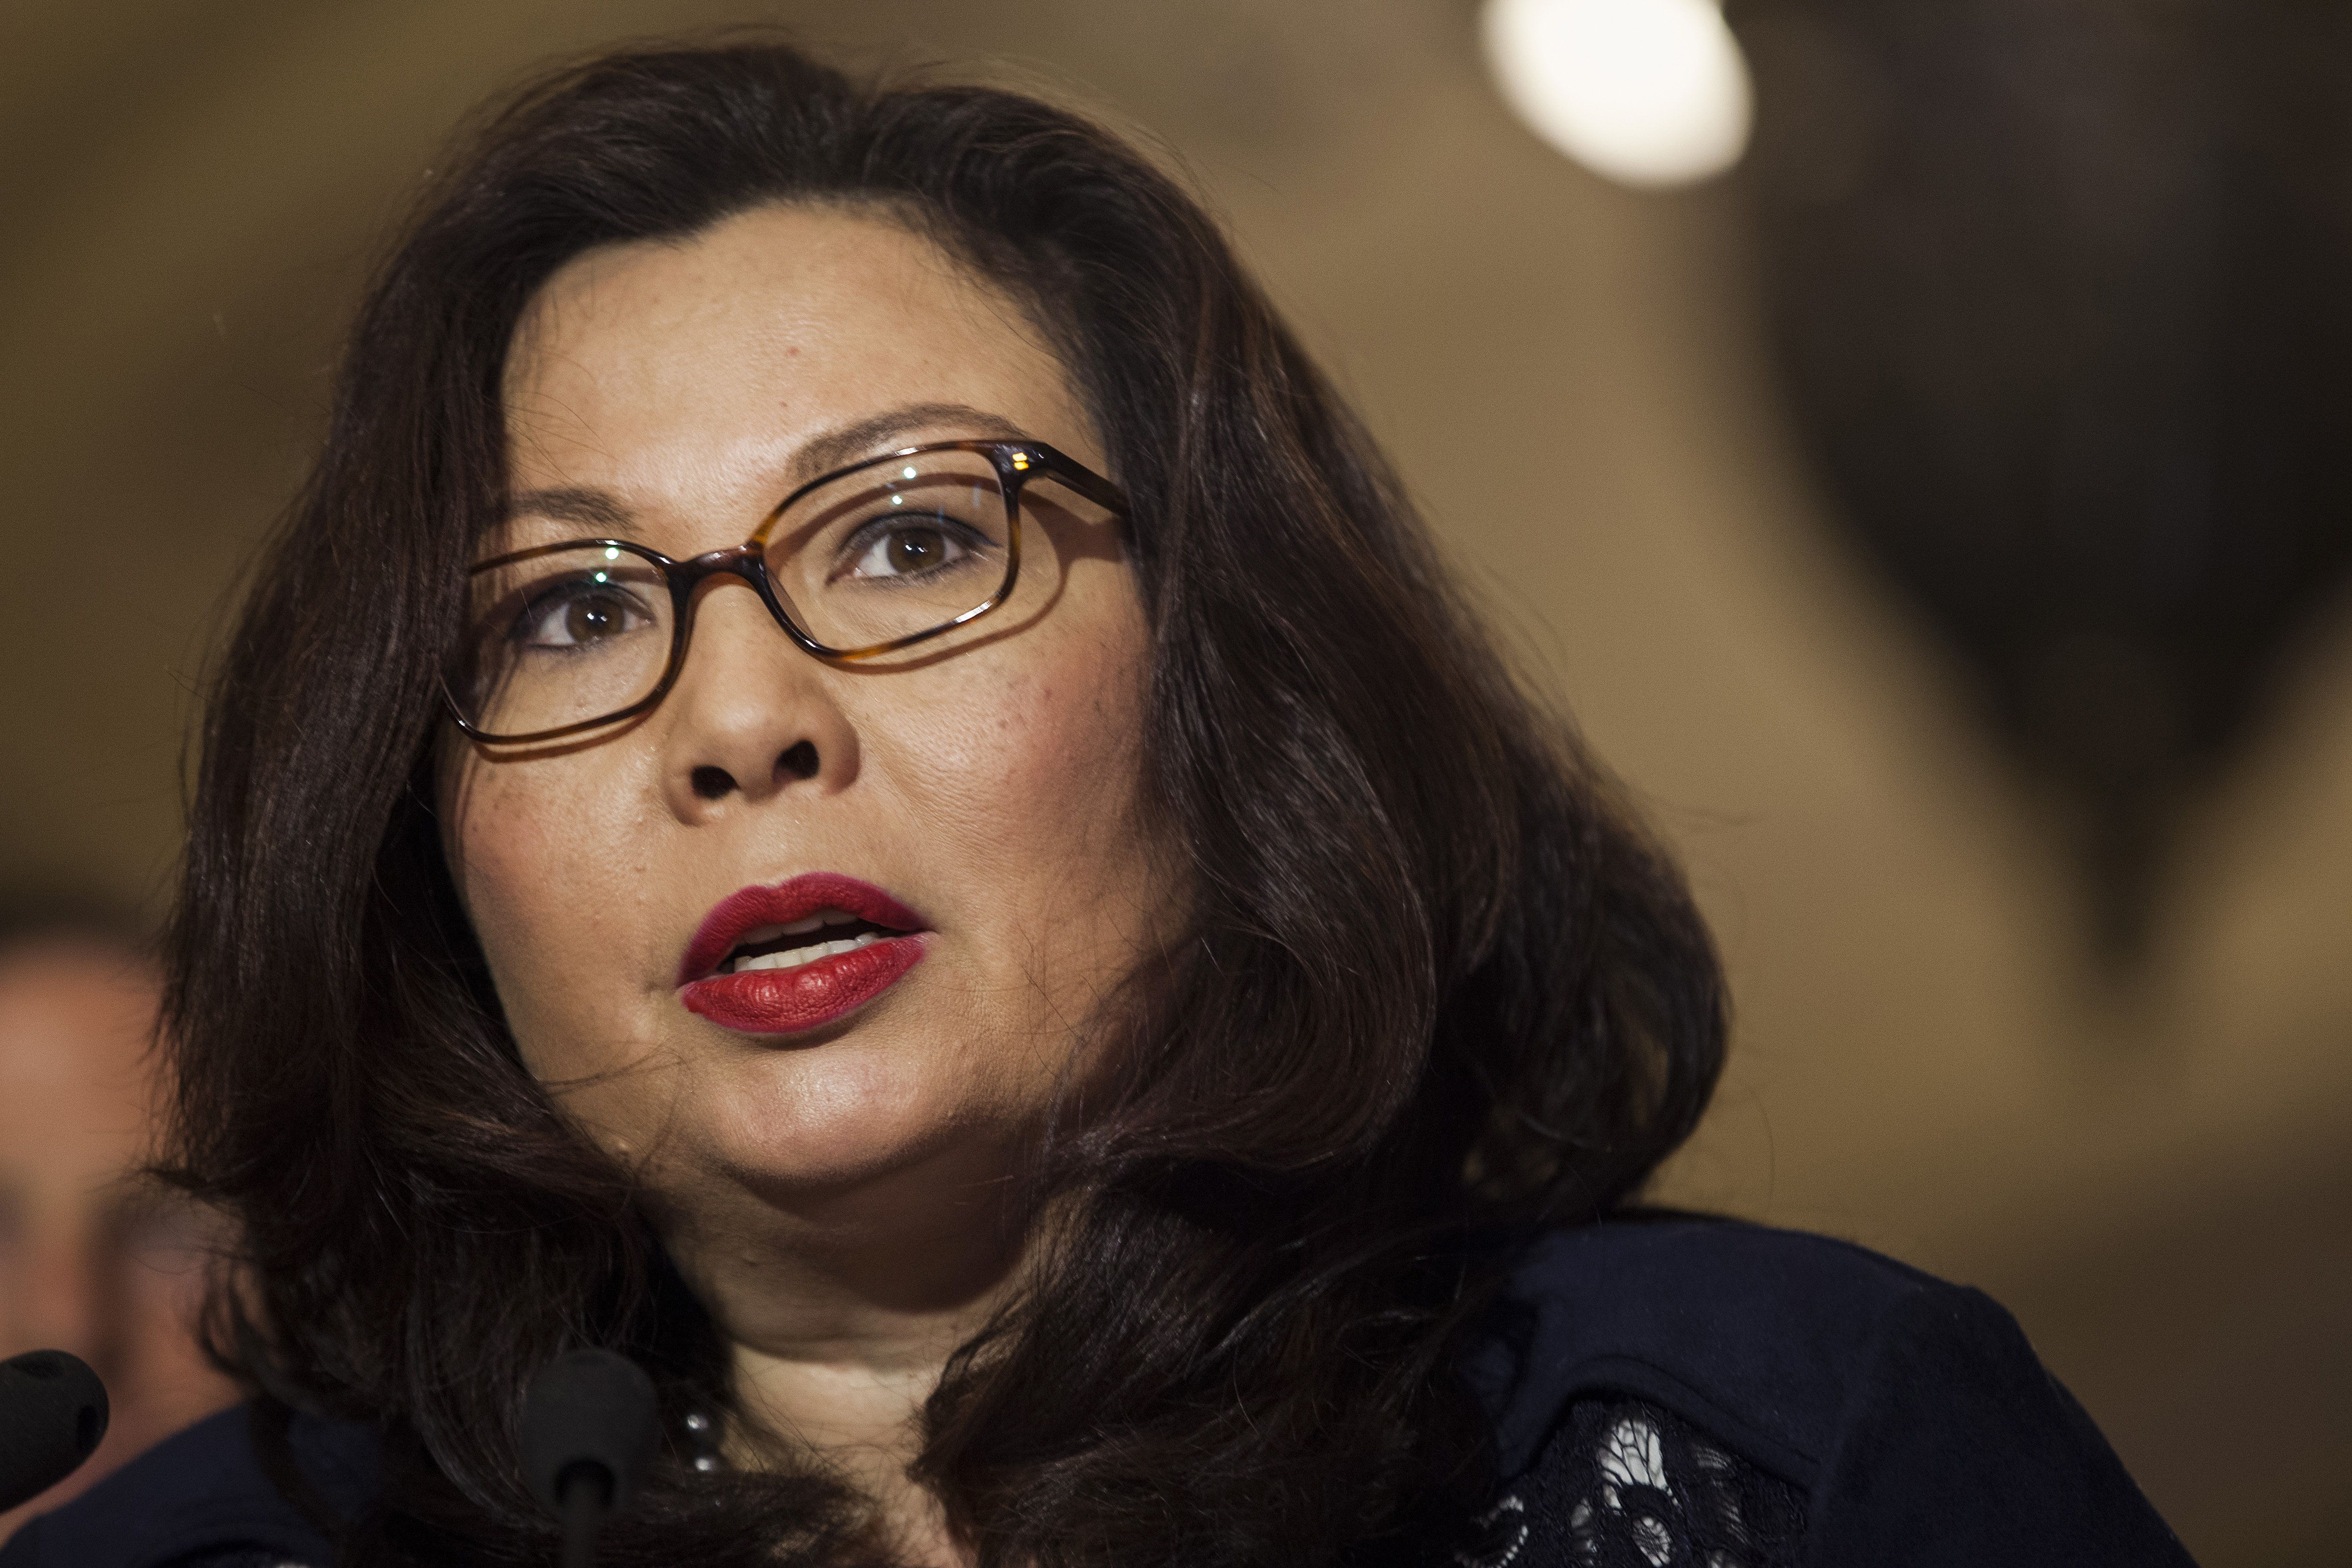 Senator Tammy Duckworth, a Democrat from Illinois, speaks during a news conference following a Senate Democratic luncheon in Washington, D.C., U.S., on Tuesday, May 16, 2017. U.S. lawmakers from both parties kept up the pressure on Donald Trump over the sudden firing of James Comey, demanding that recordings the president suggested he may have made of his meetings with the former FBI director be preserved and handed over to lawmakers. Photographer: Zach Gibson/Bloomberg via Getty Images